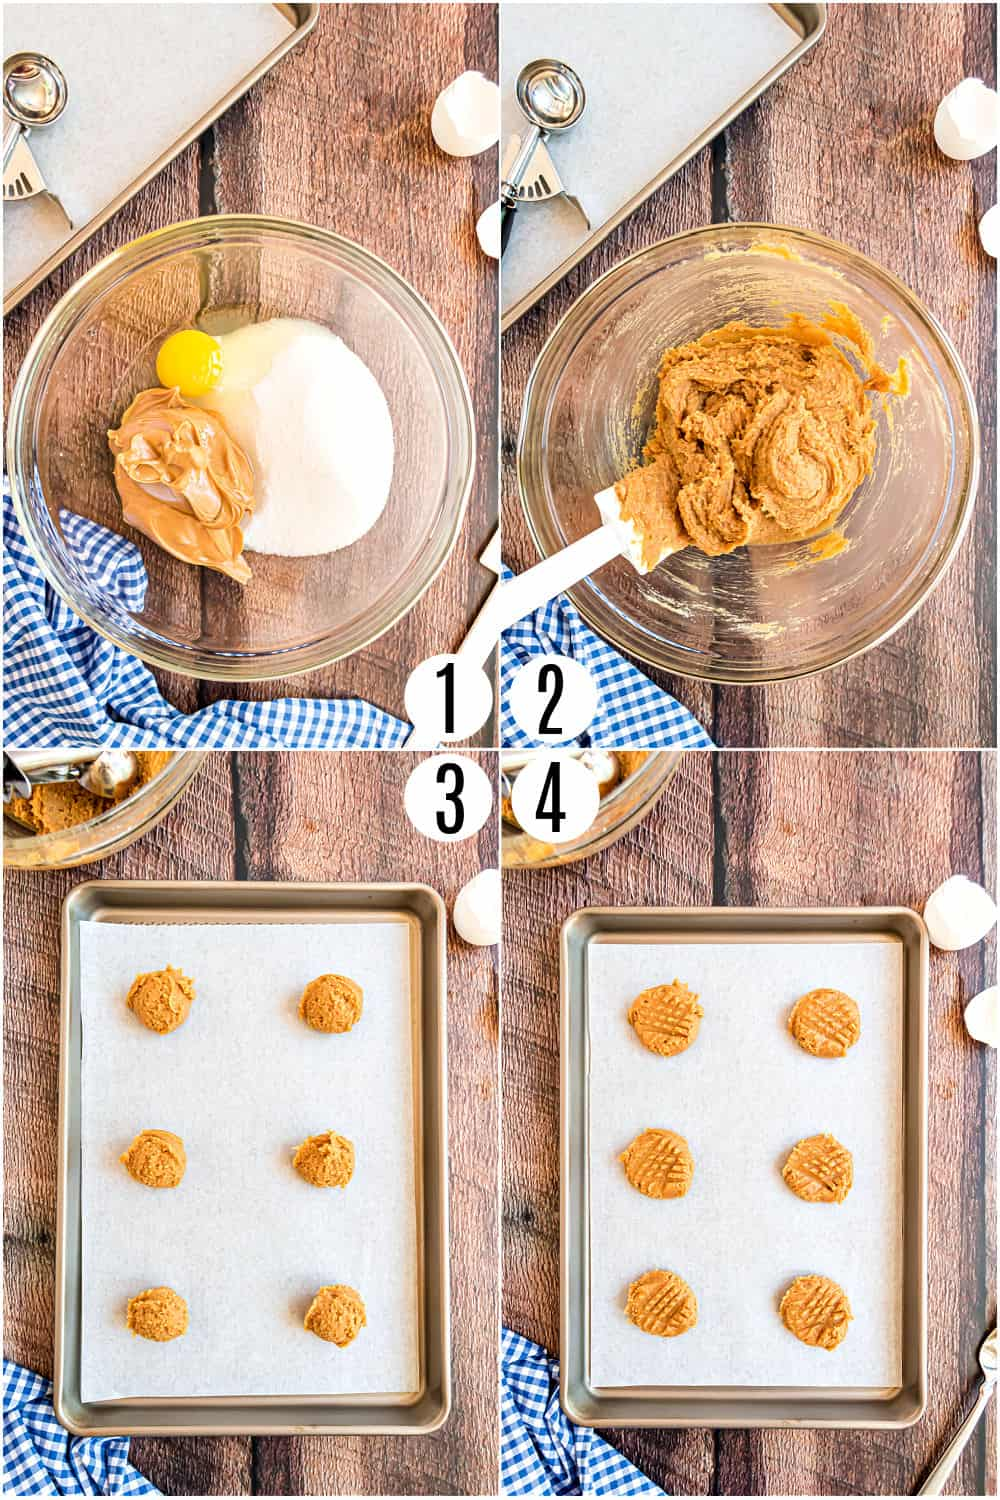 Step by step photos showing how to make peanut butter cookies with three ingredients.